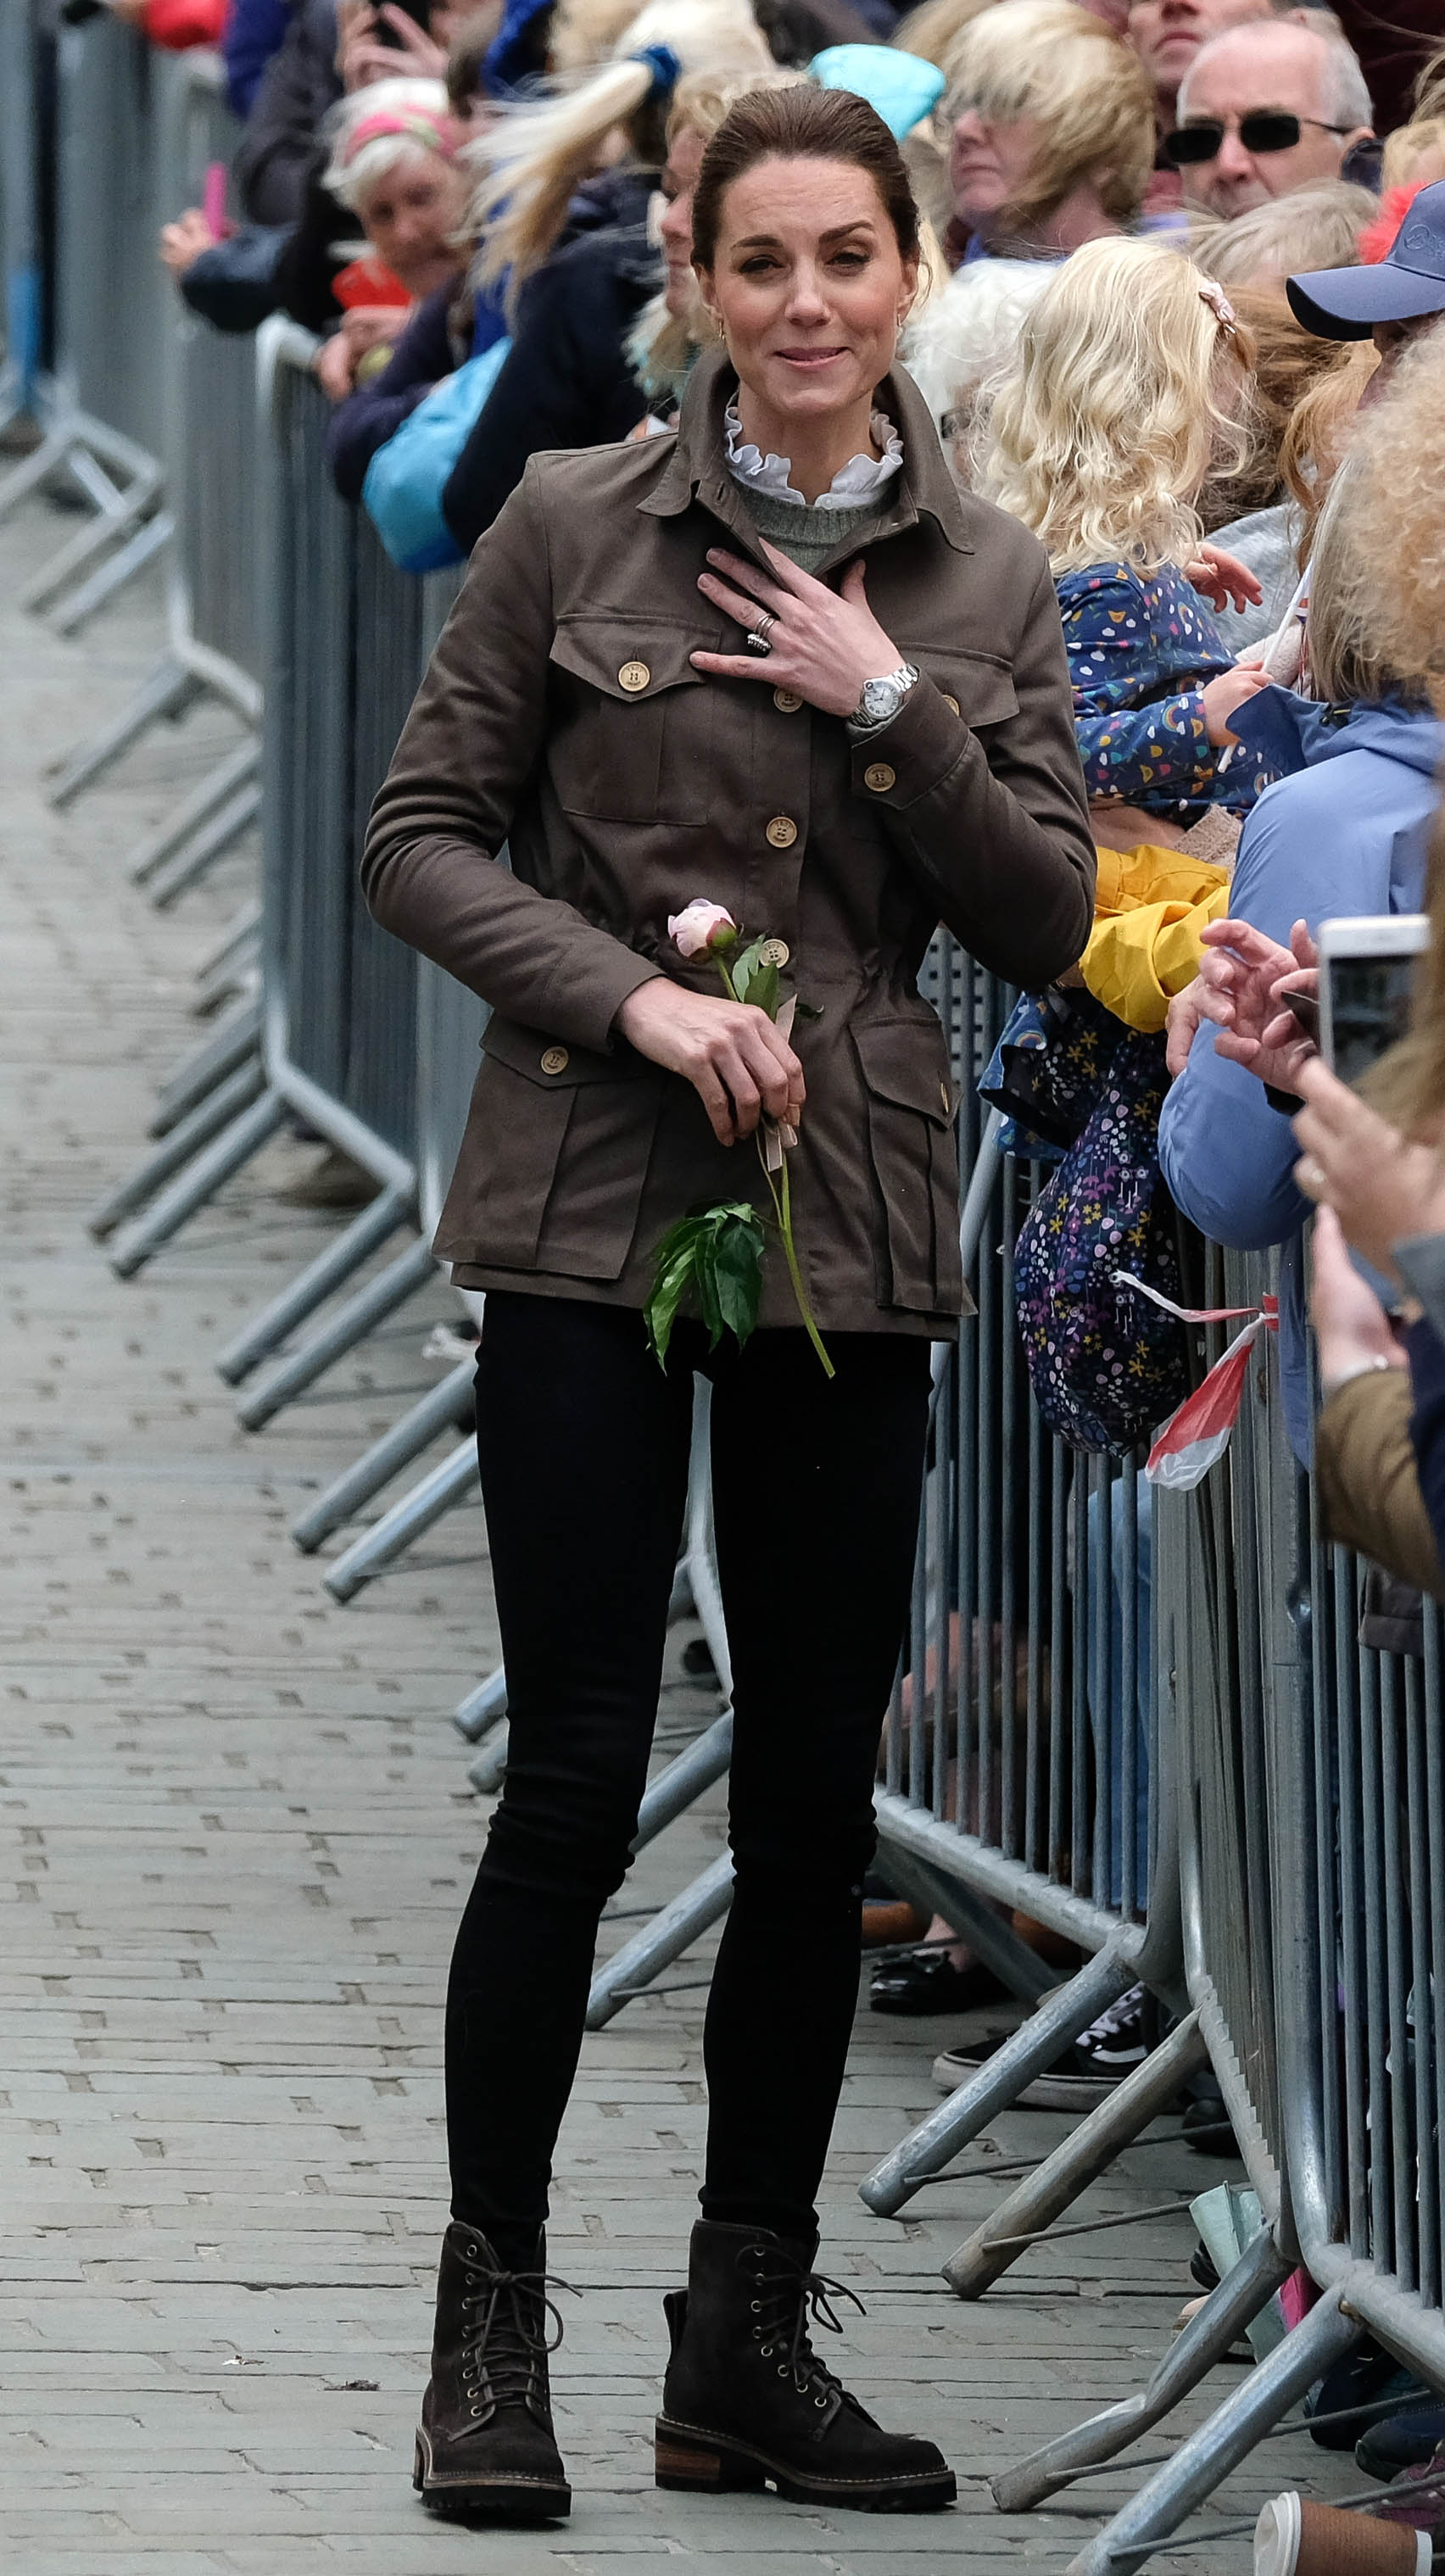 Kate Middleton visits Keswick, Cumbria on Tuesday, June 11 | Photo: Getty Images